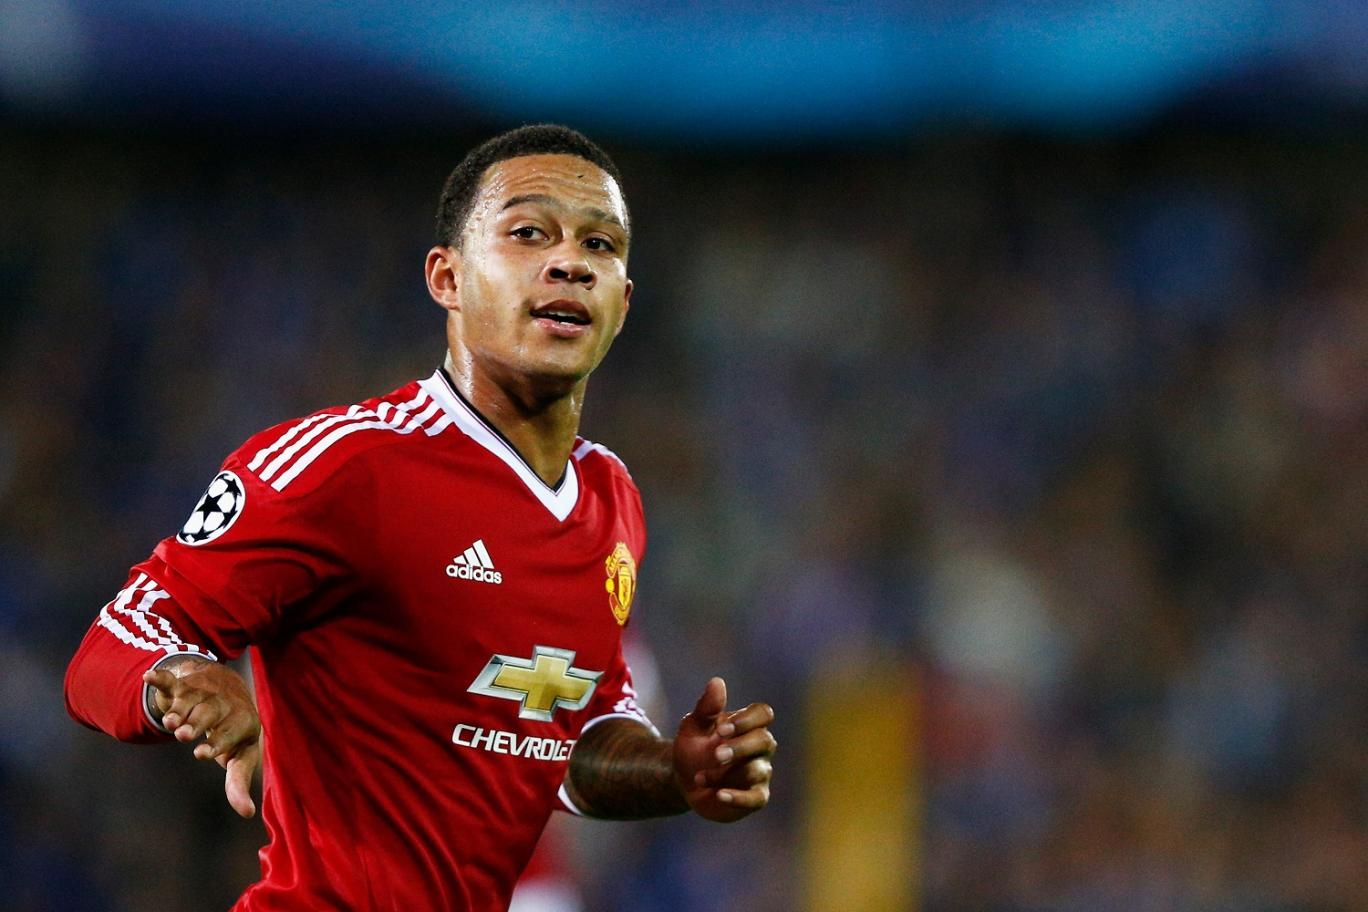 I became a better player after Man Utd: Depay